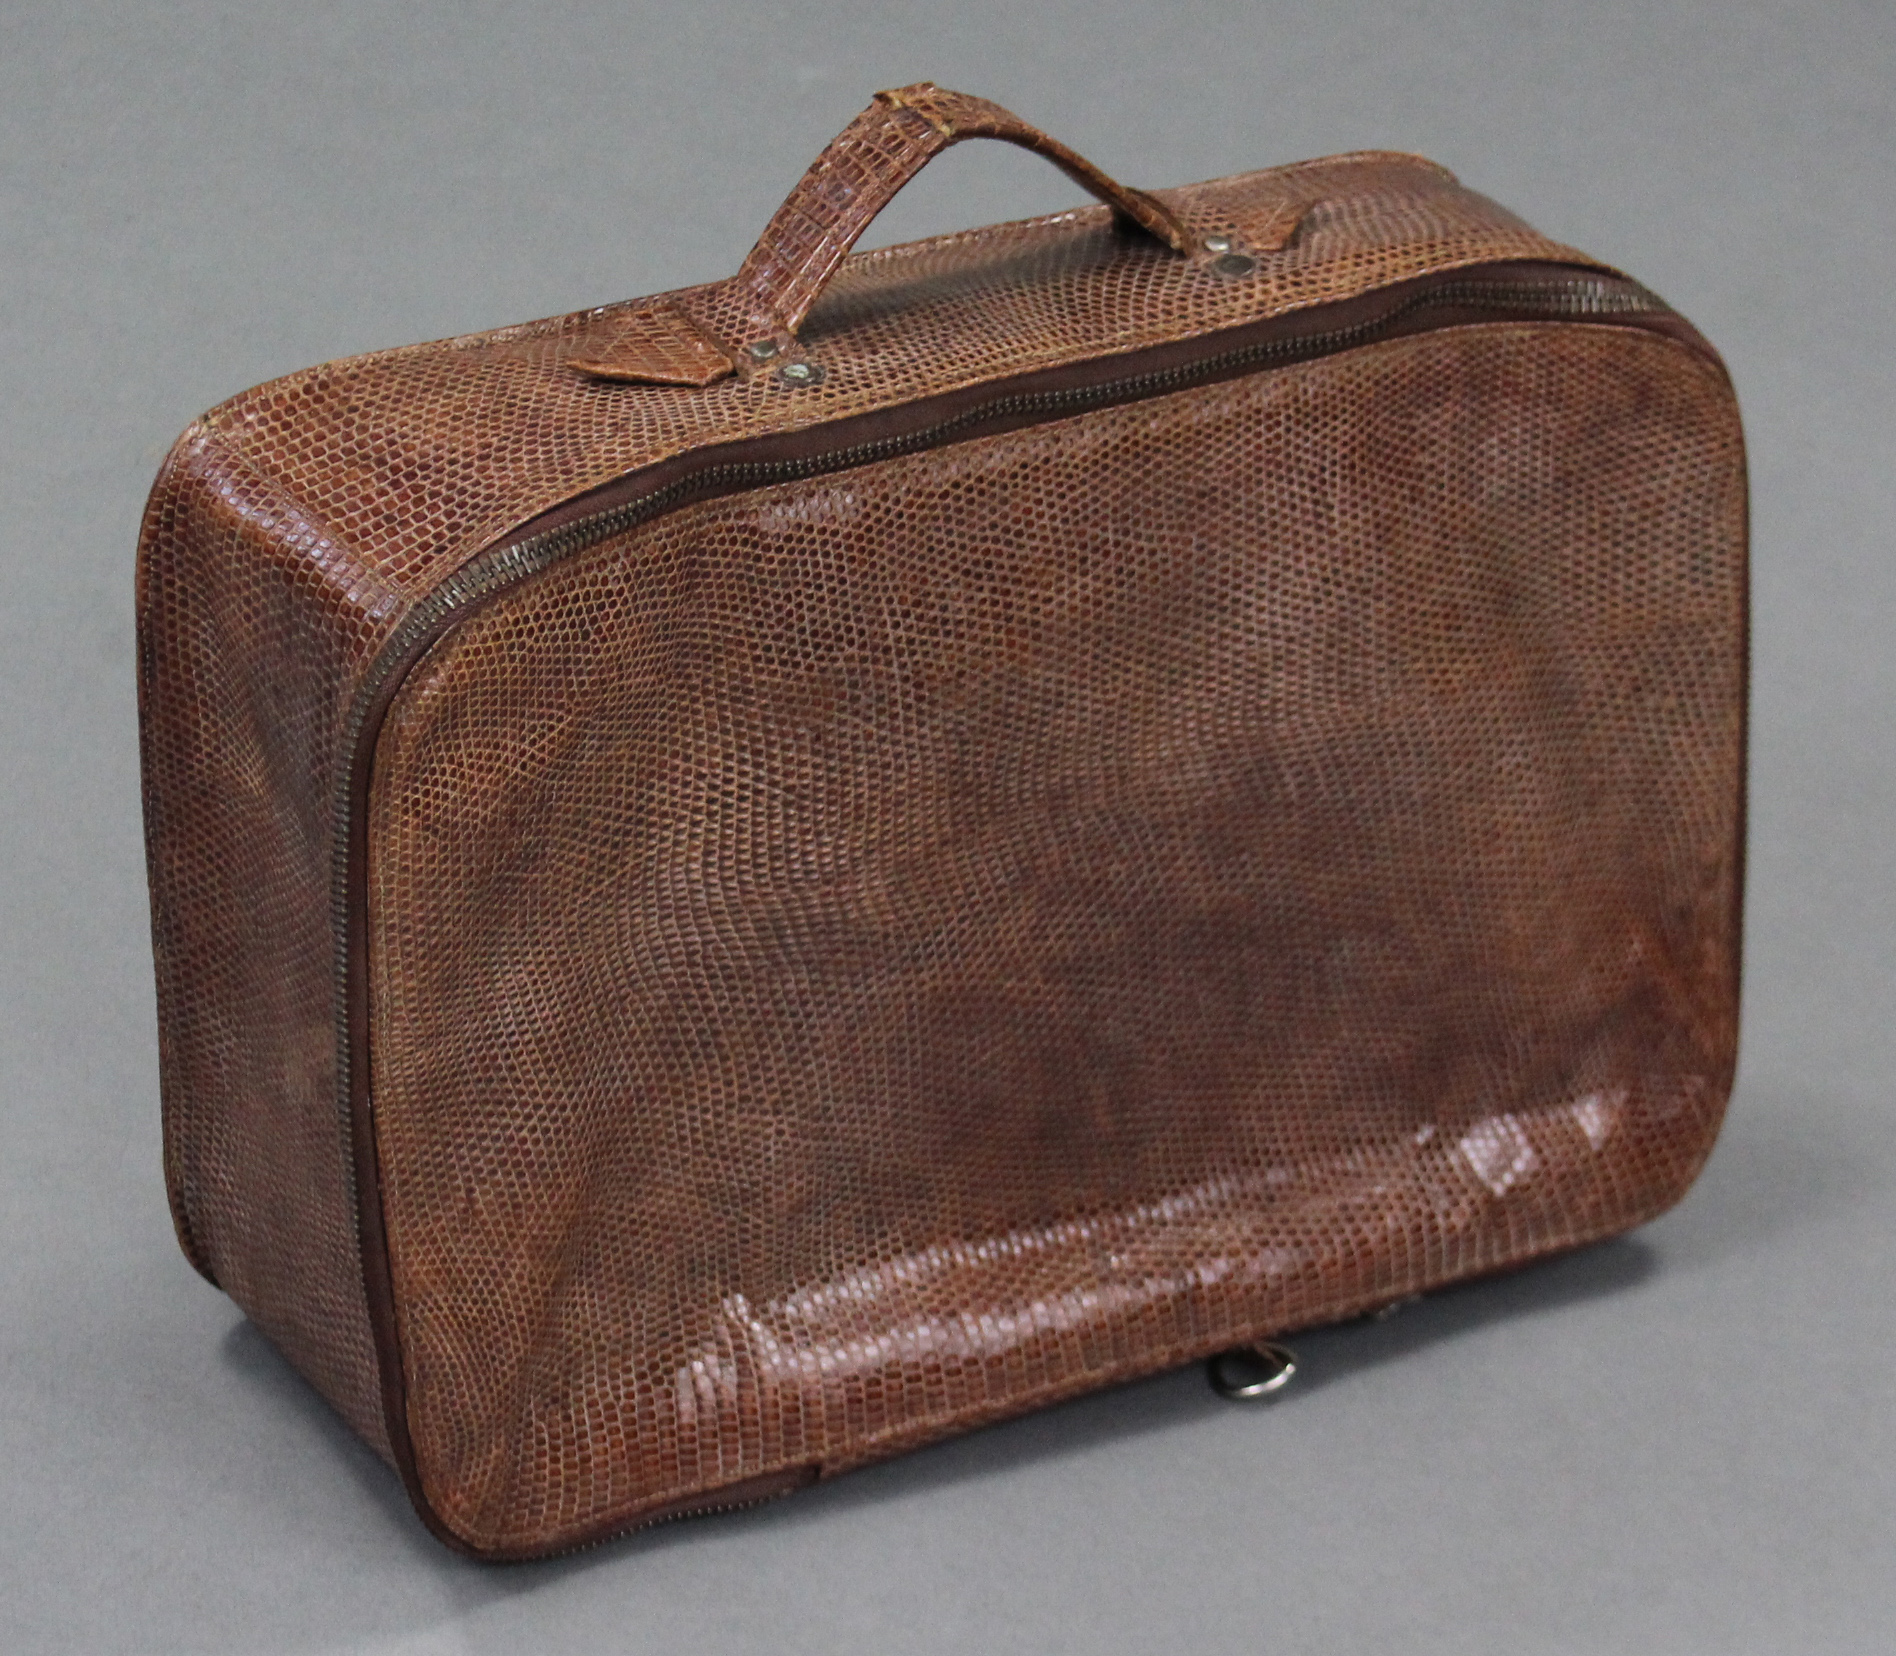 Lot 13 - A snakeskin small suitcase with tan leather lining.